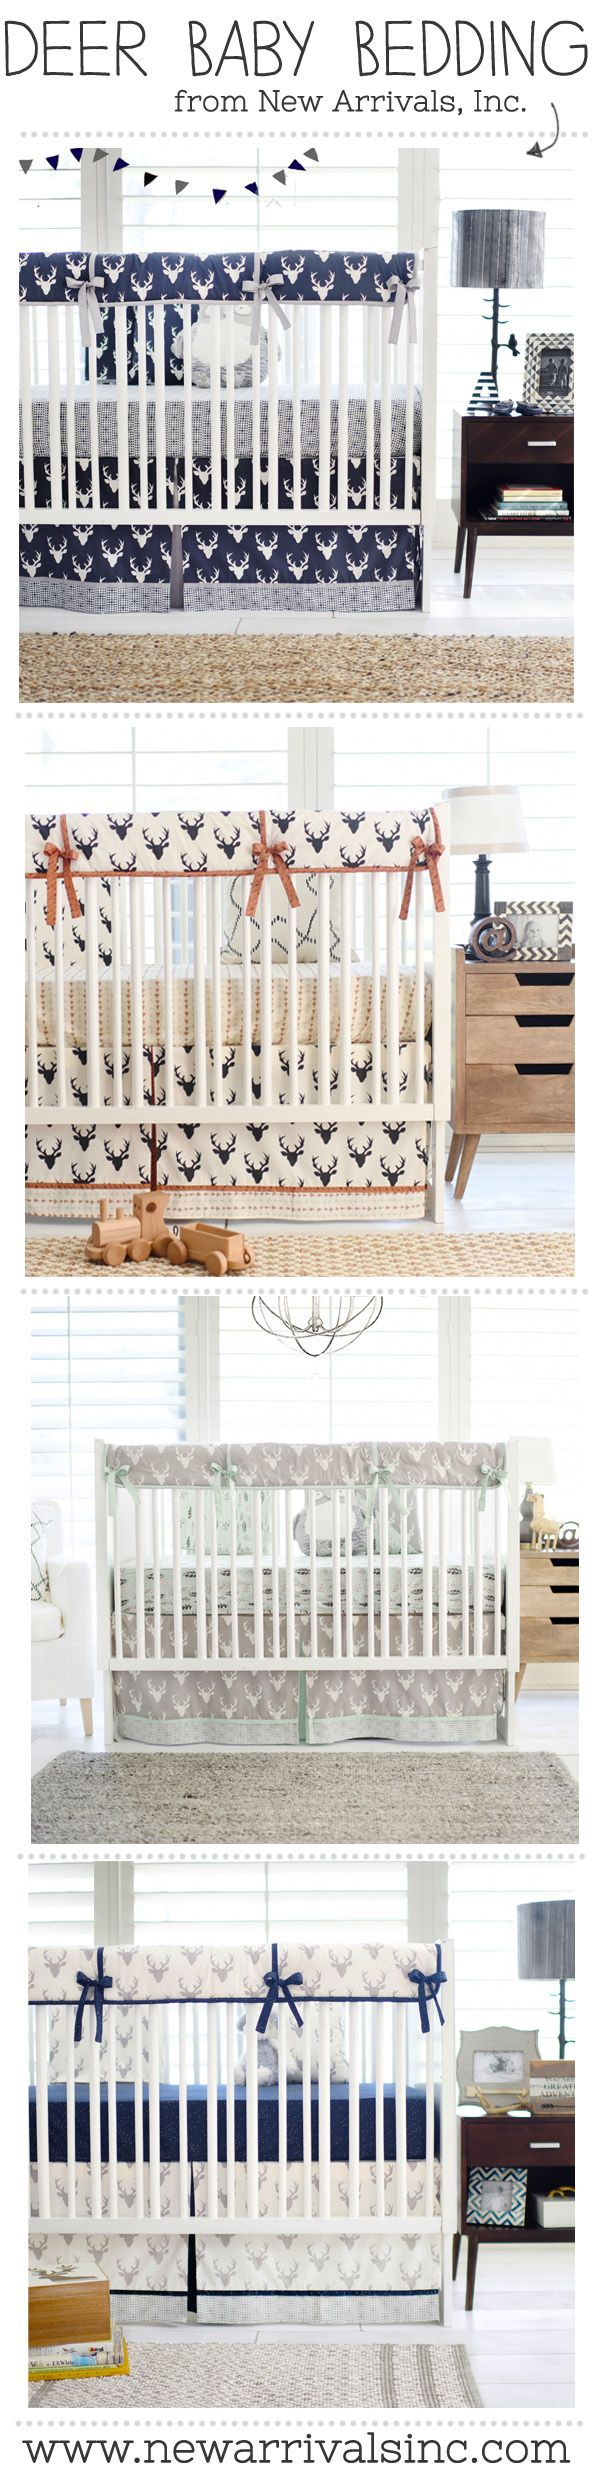 Create adventure in your Woodland Nursery with our Deer Crib Bedding!  From New Arrivals, Inc. <3